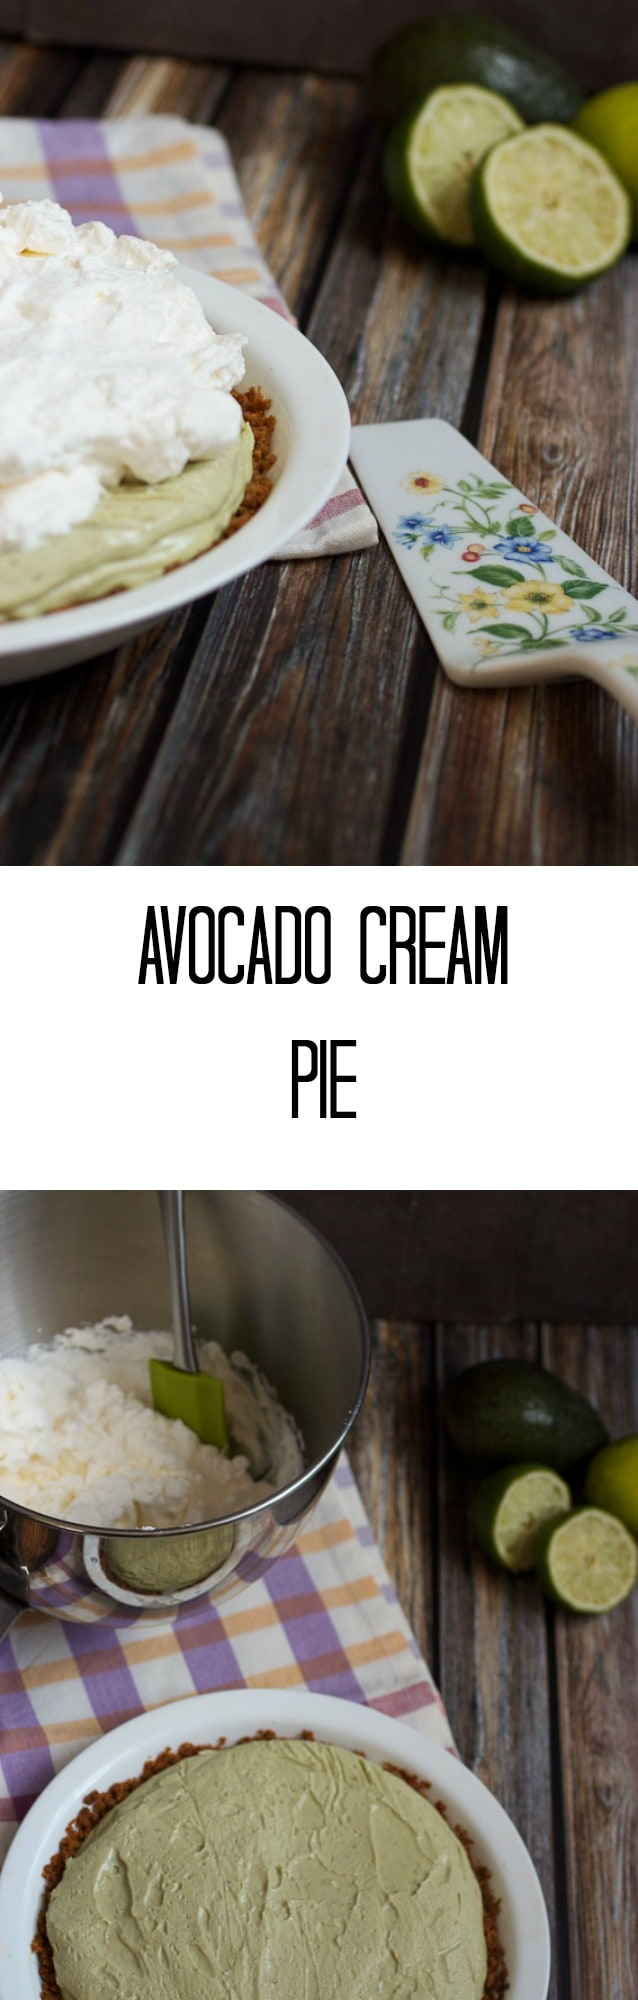 Avocado Cream Pie | girlinthelittleredkitchen.com